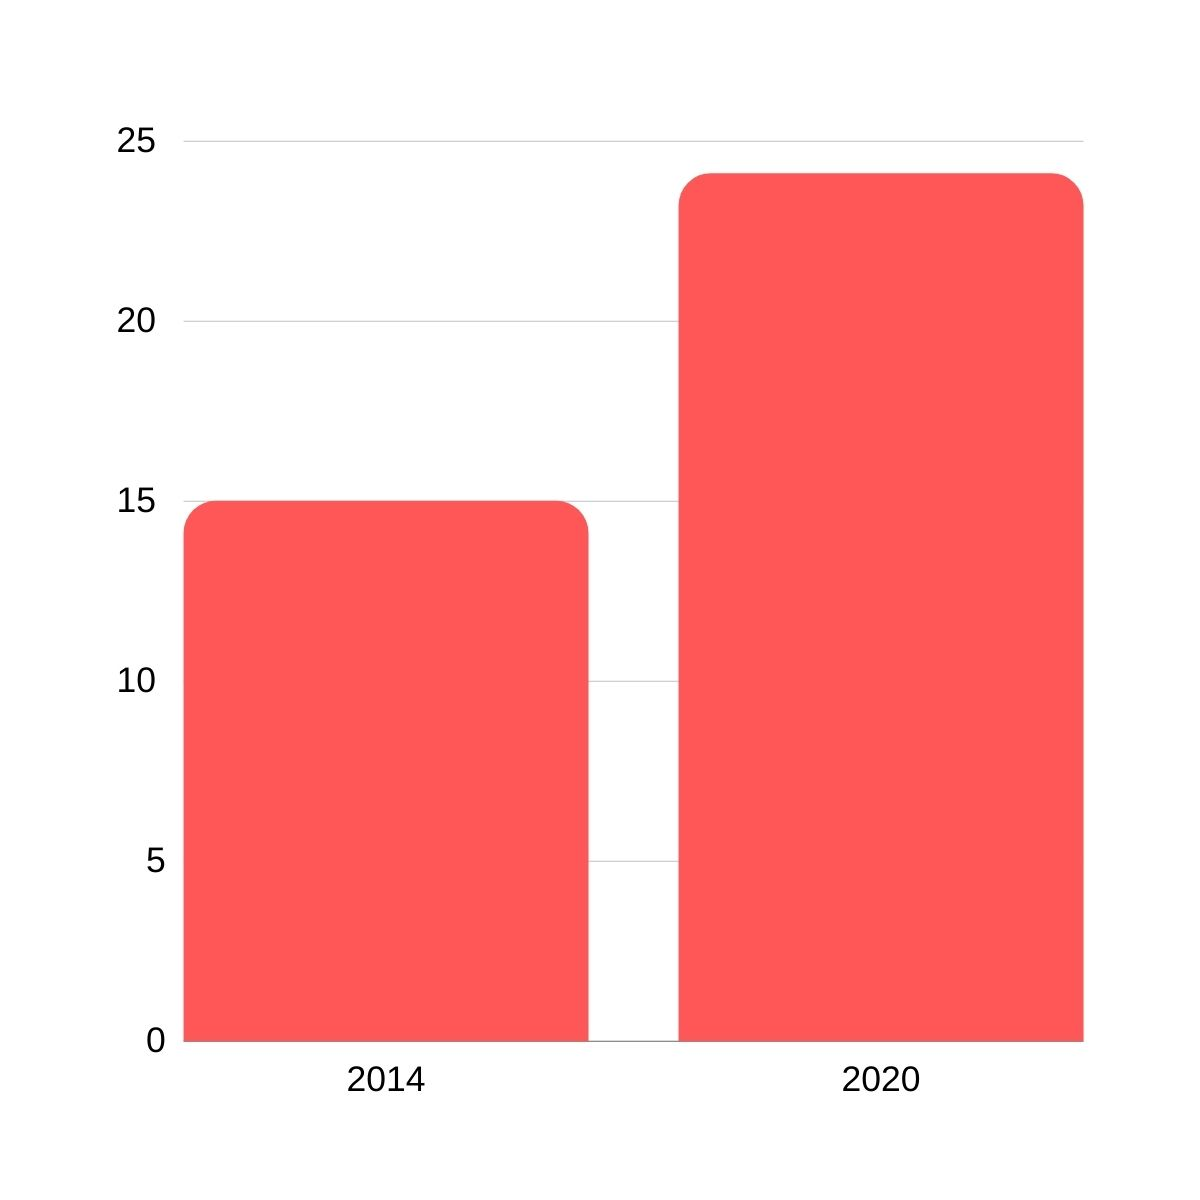 Women in tech at Facebook from 2014-2020 (as a percentage)